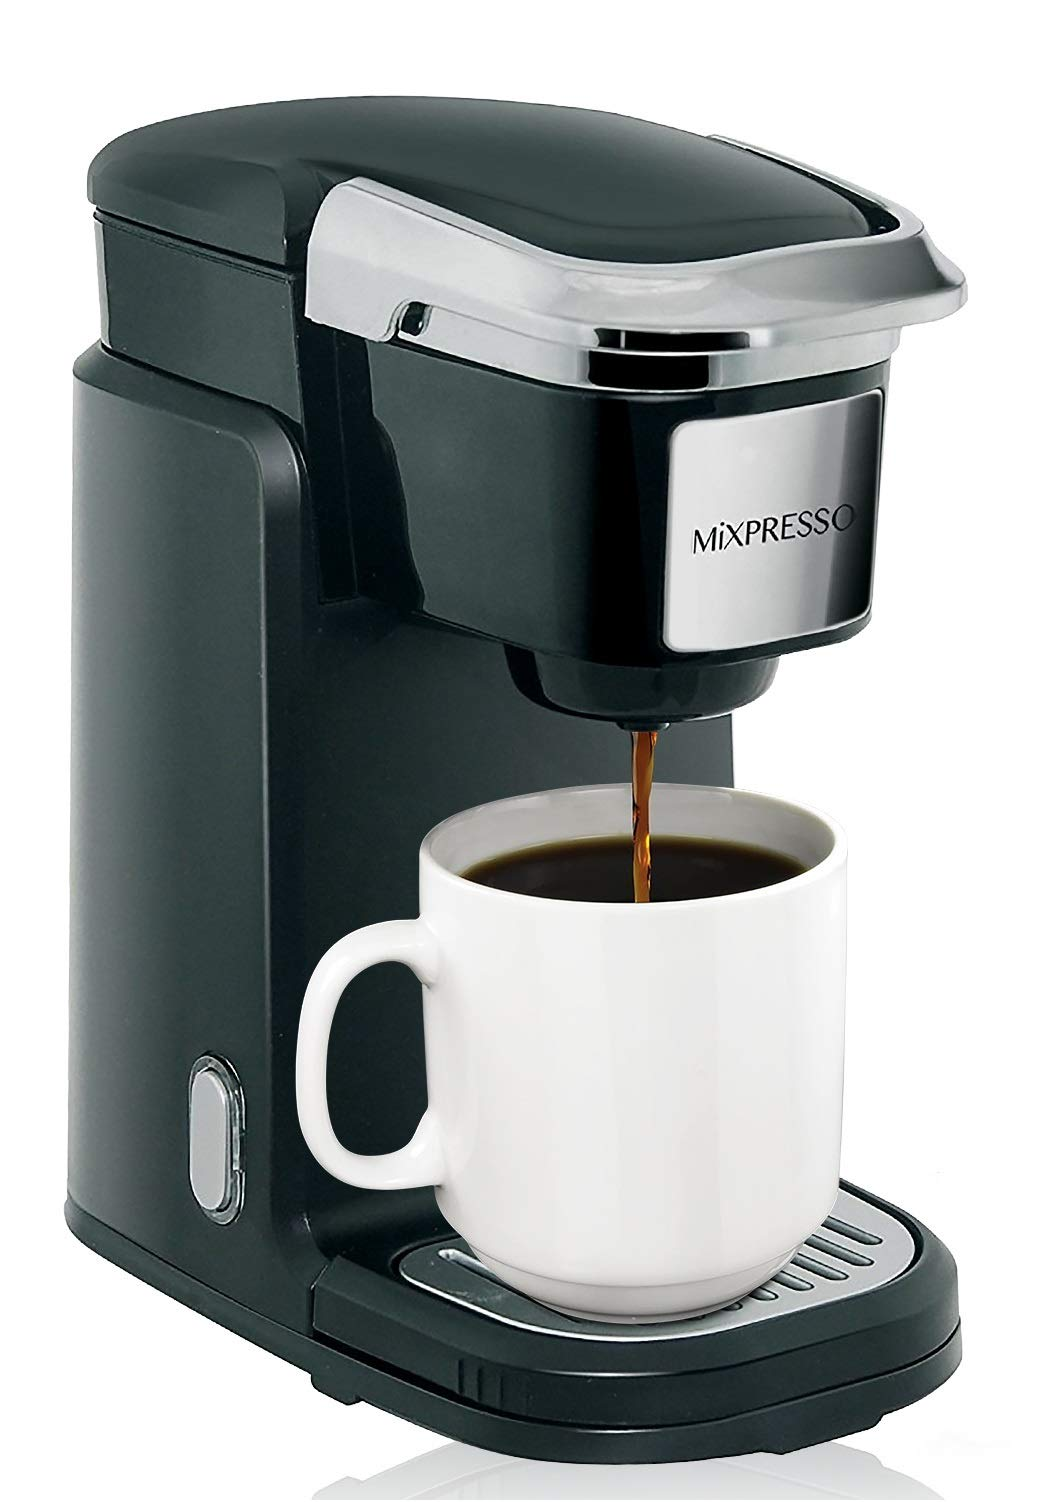 Mixpresso Single Cup Coffee Maker   Personal, Single Serve Coffee Brewer Machine, Compatible With K-Cups